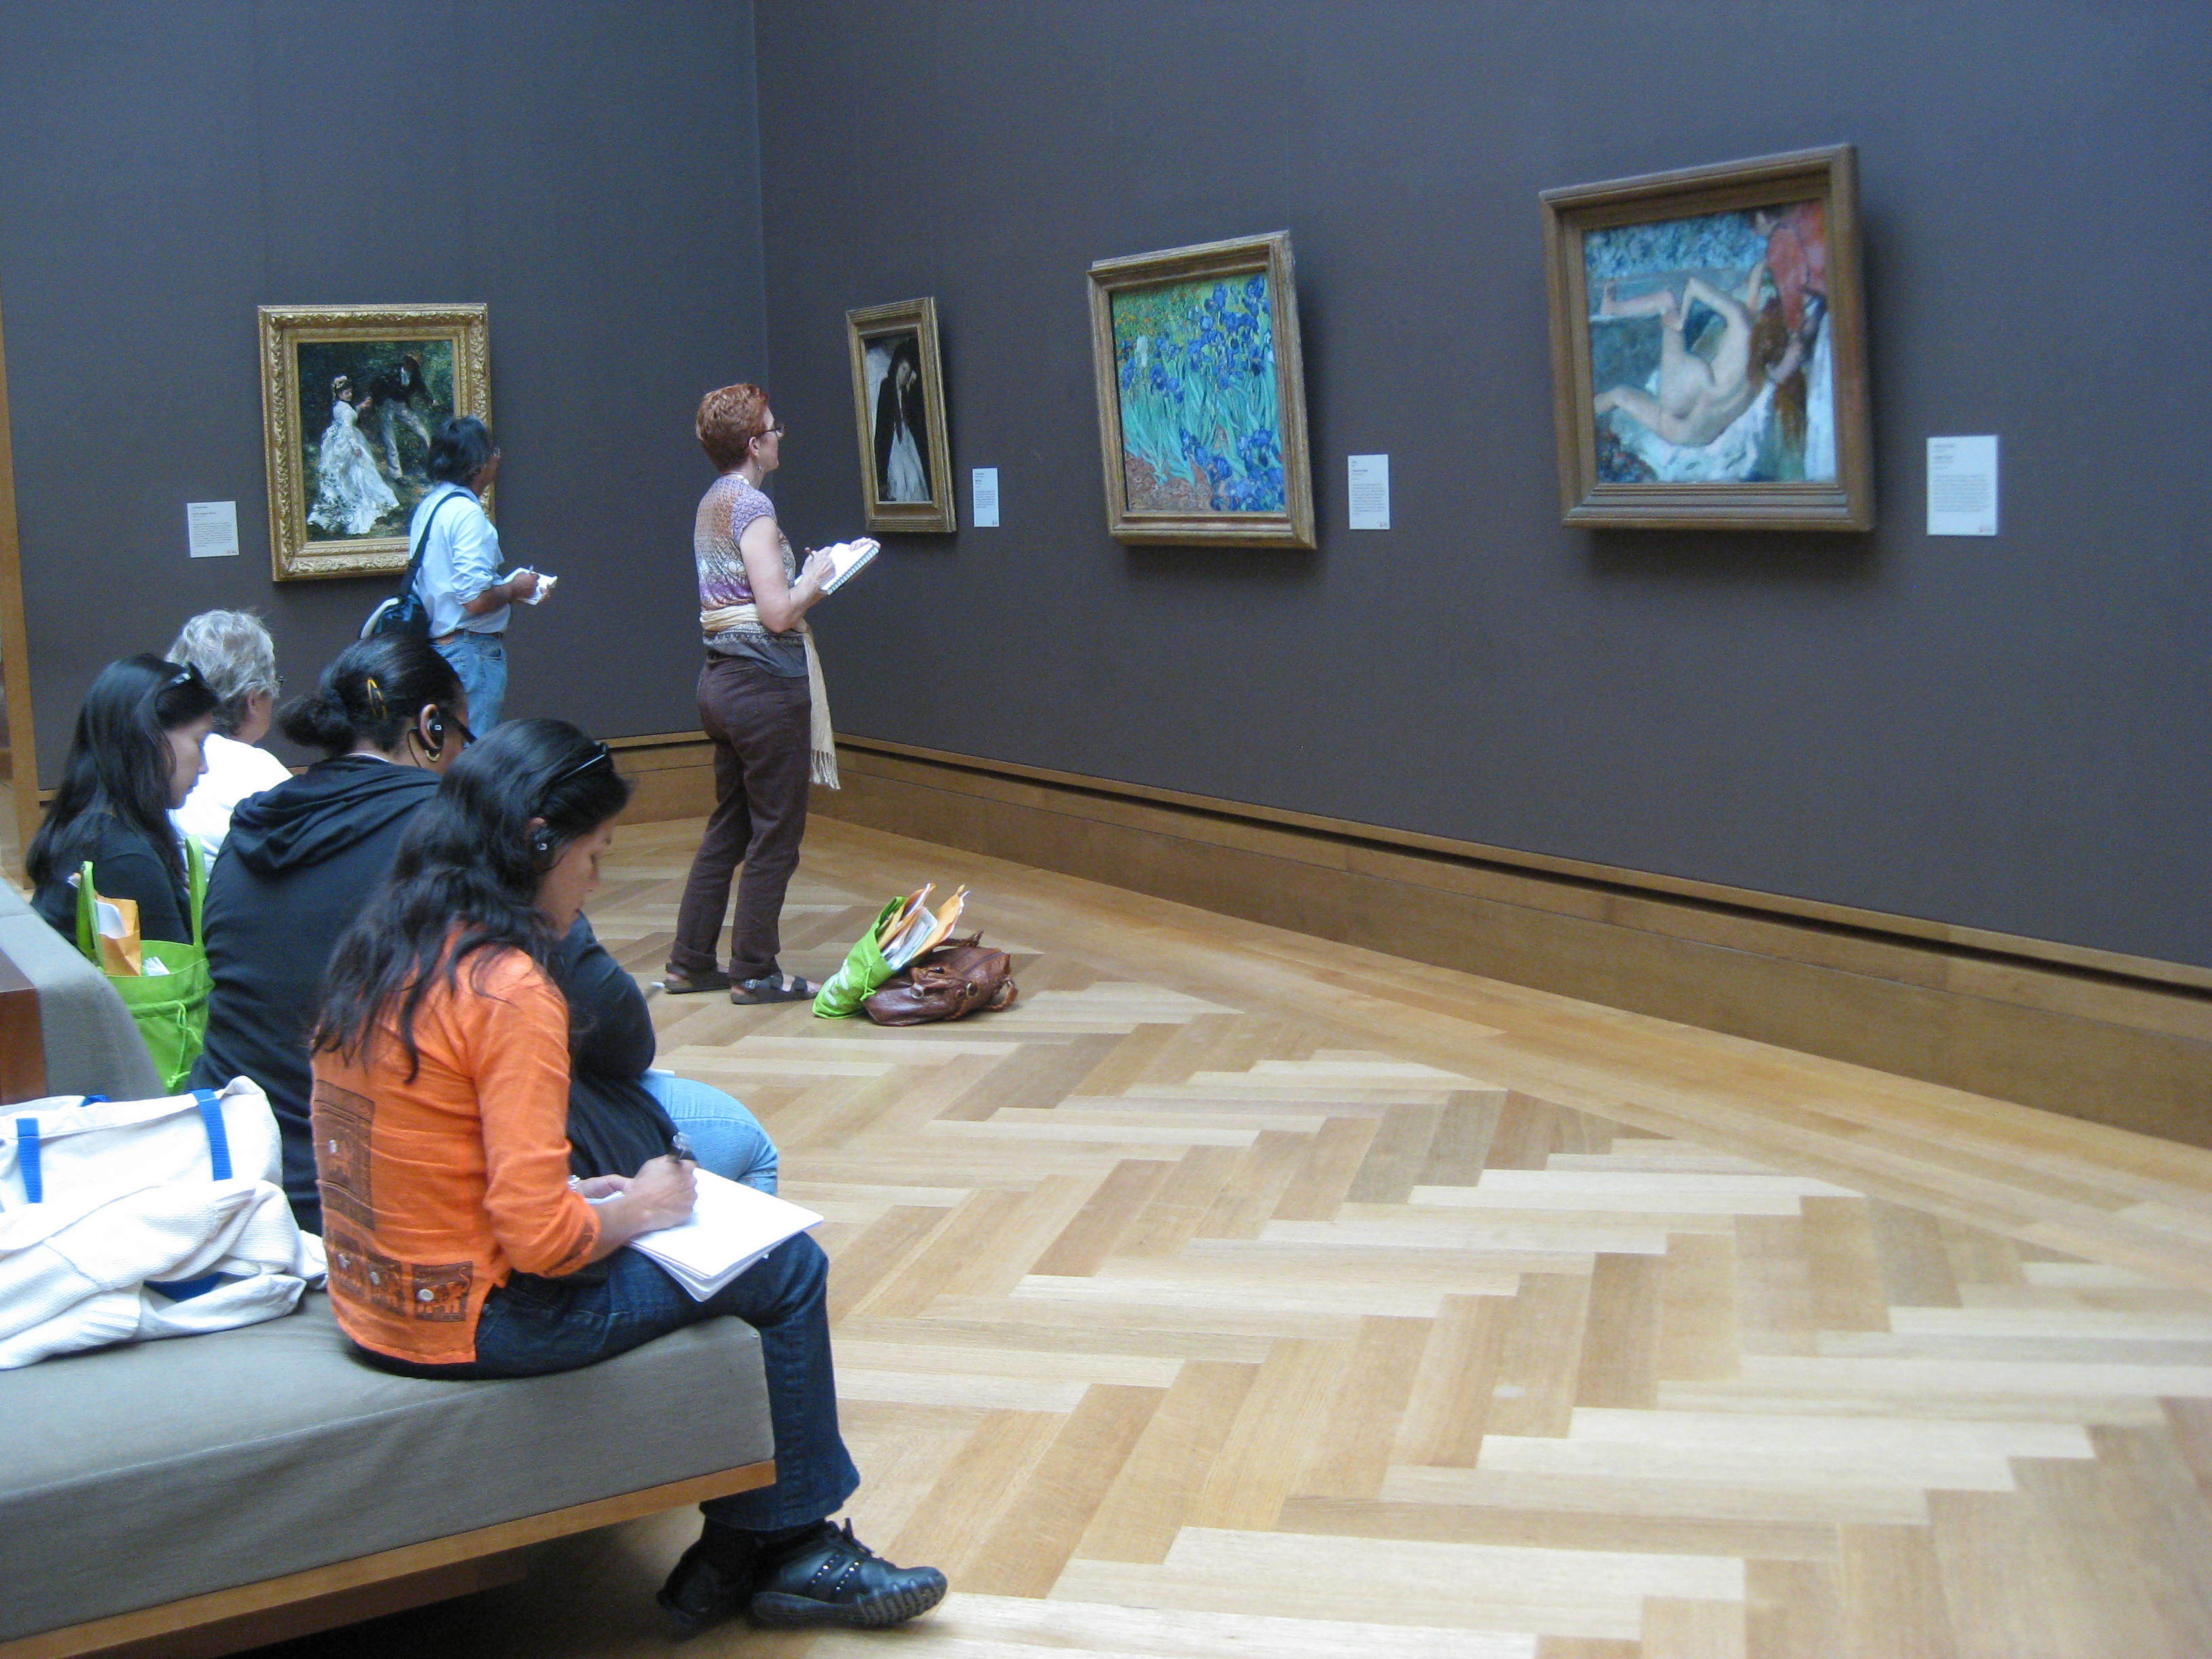 We were able to journal in quiet galleries before the museum opened to the publicat least for a little while!